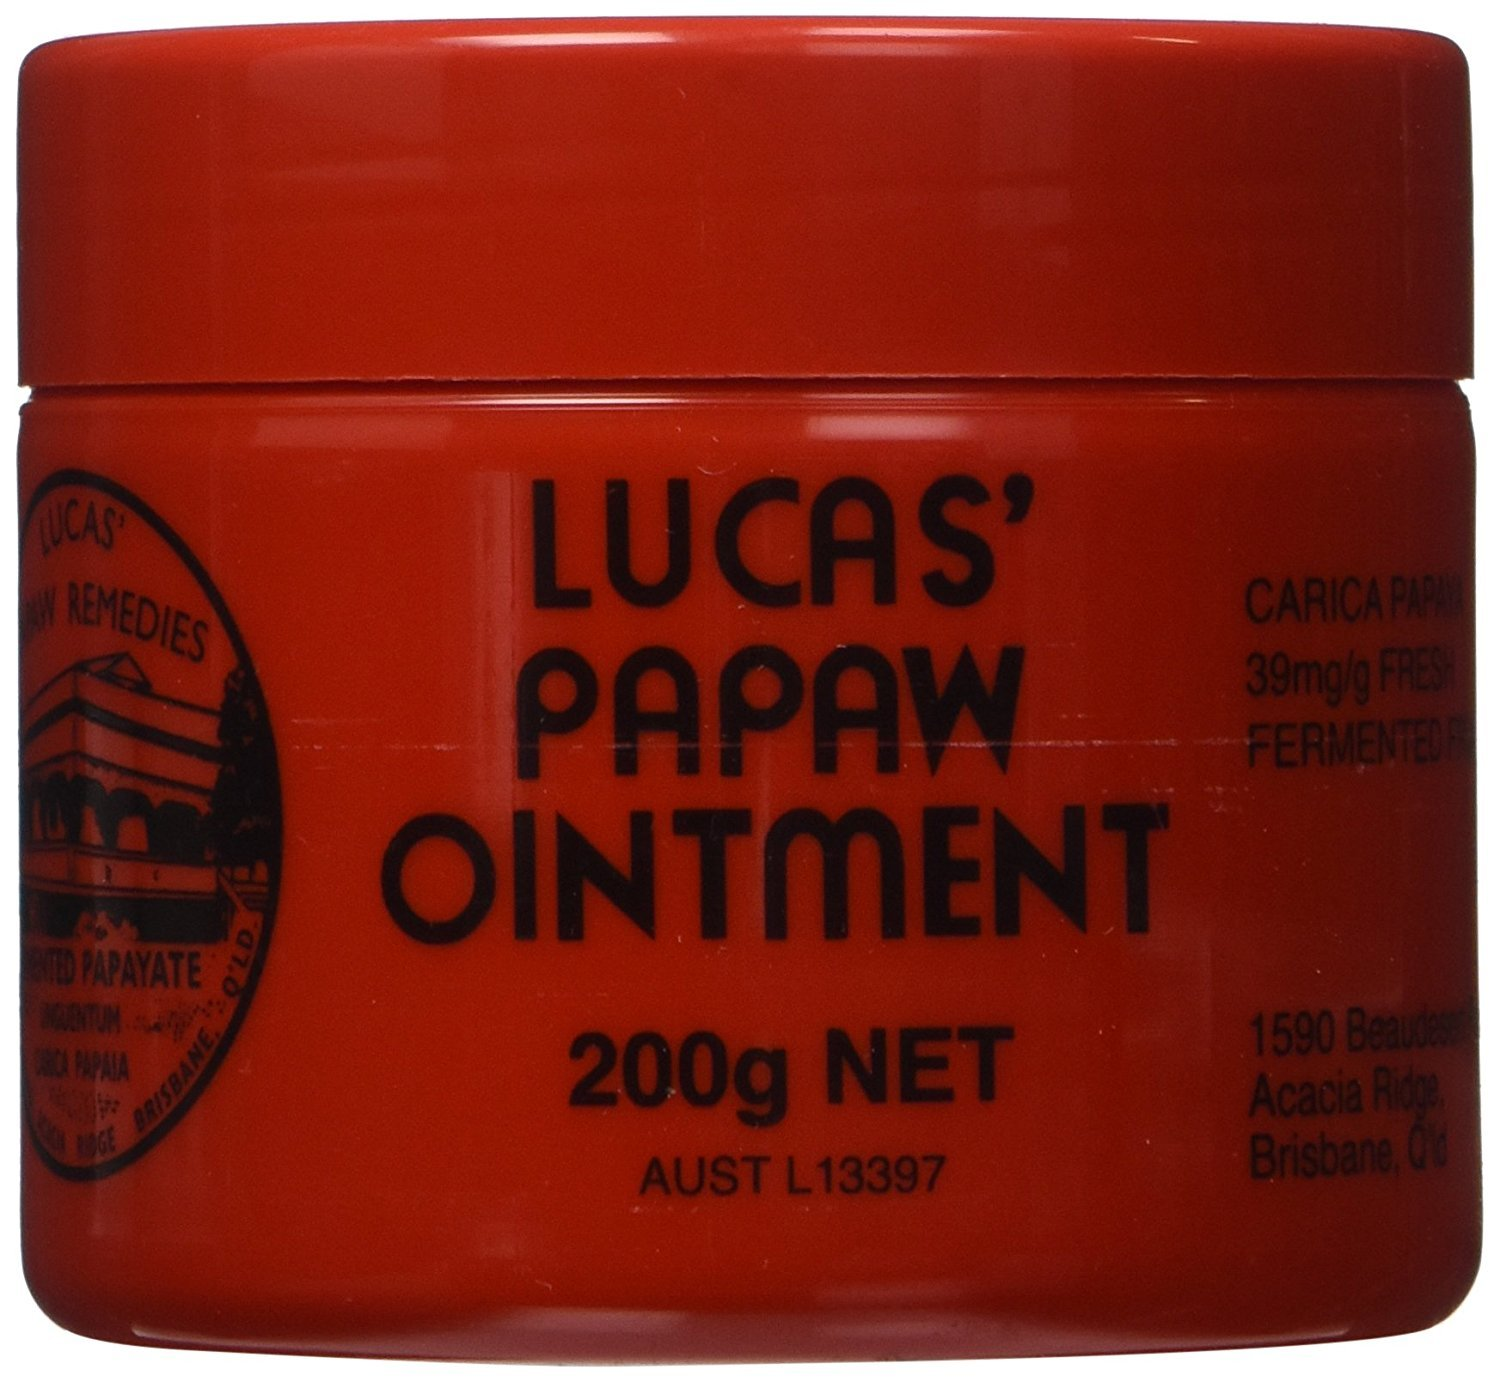 Lucas' Papaw Ointment 200g (3 Pack) by Lucas